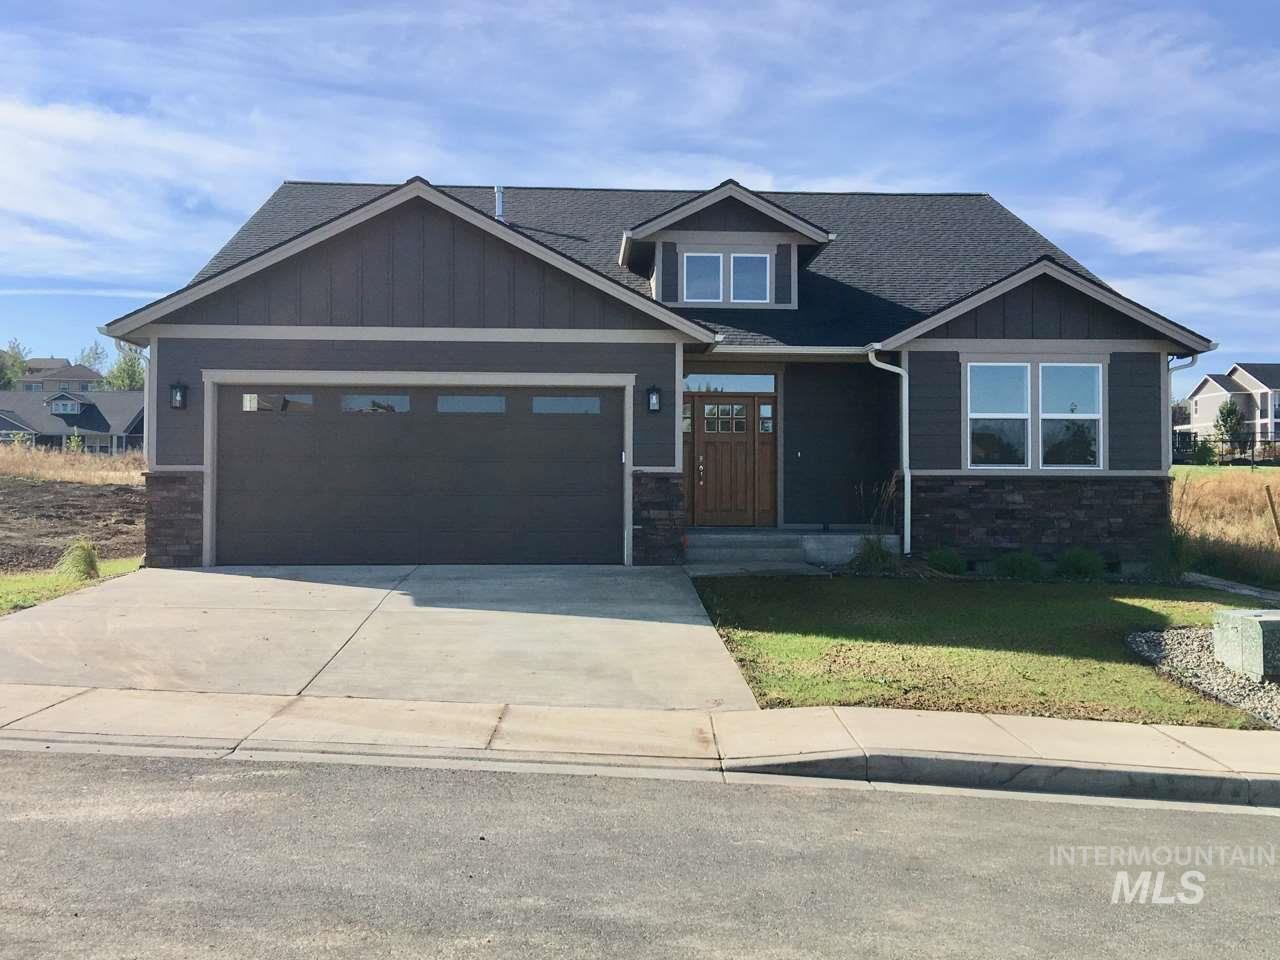 Photo of 2209 E Third Street, Moscow, ID 83843 (MLS # 98755787)